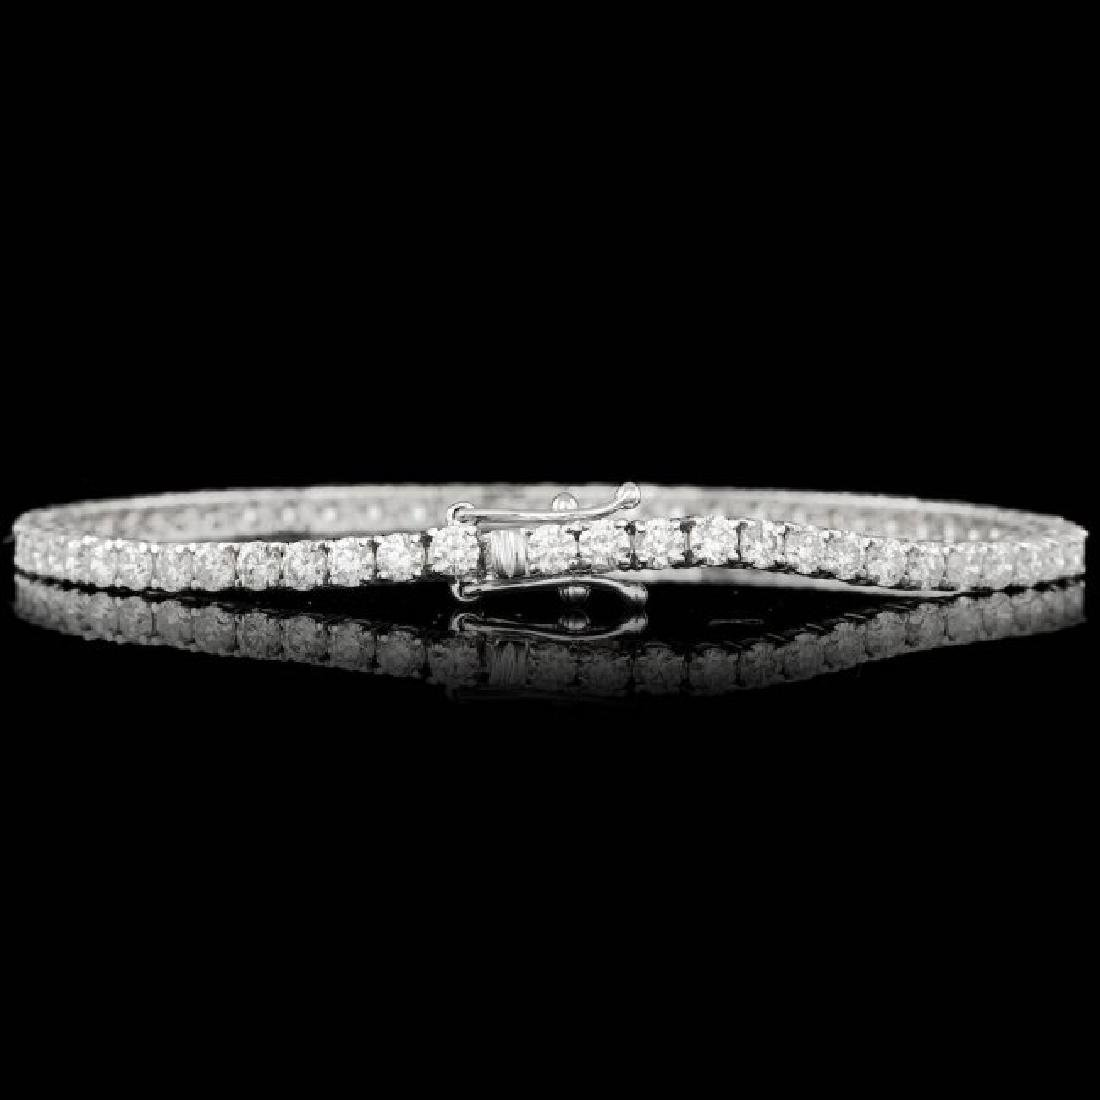 18k White Gold 5.30ct Diamond Bracelet - 3